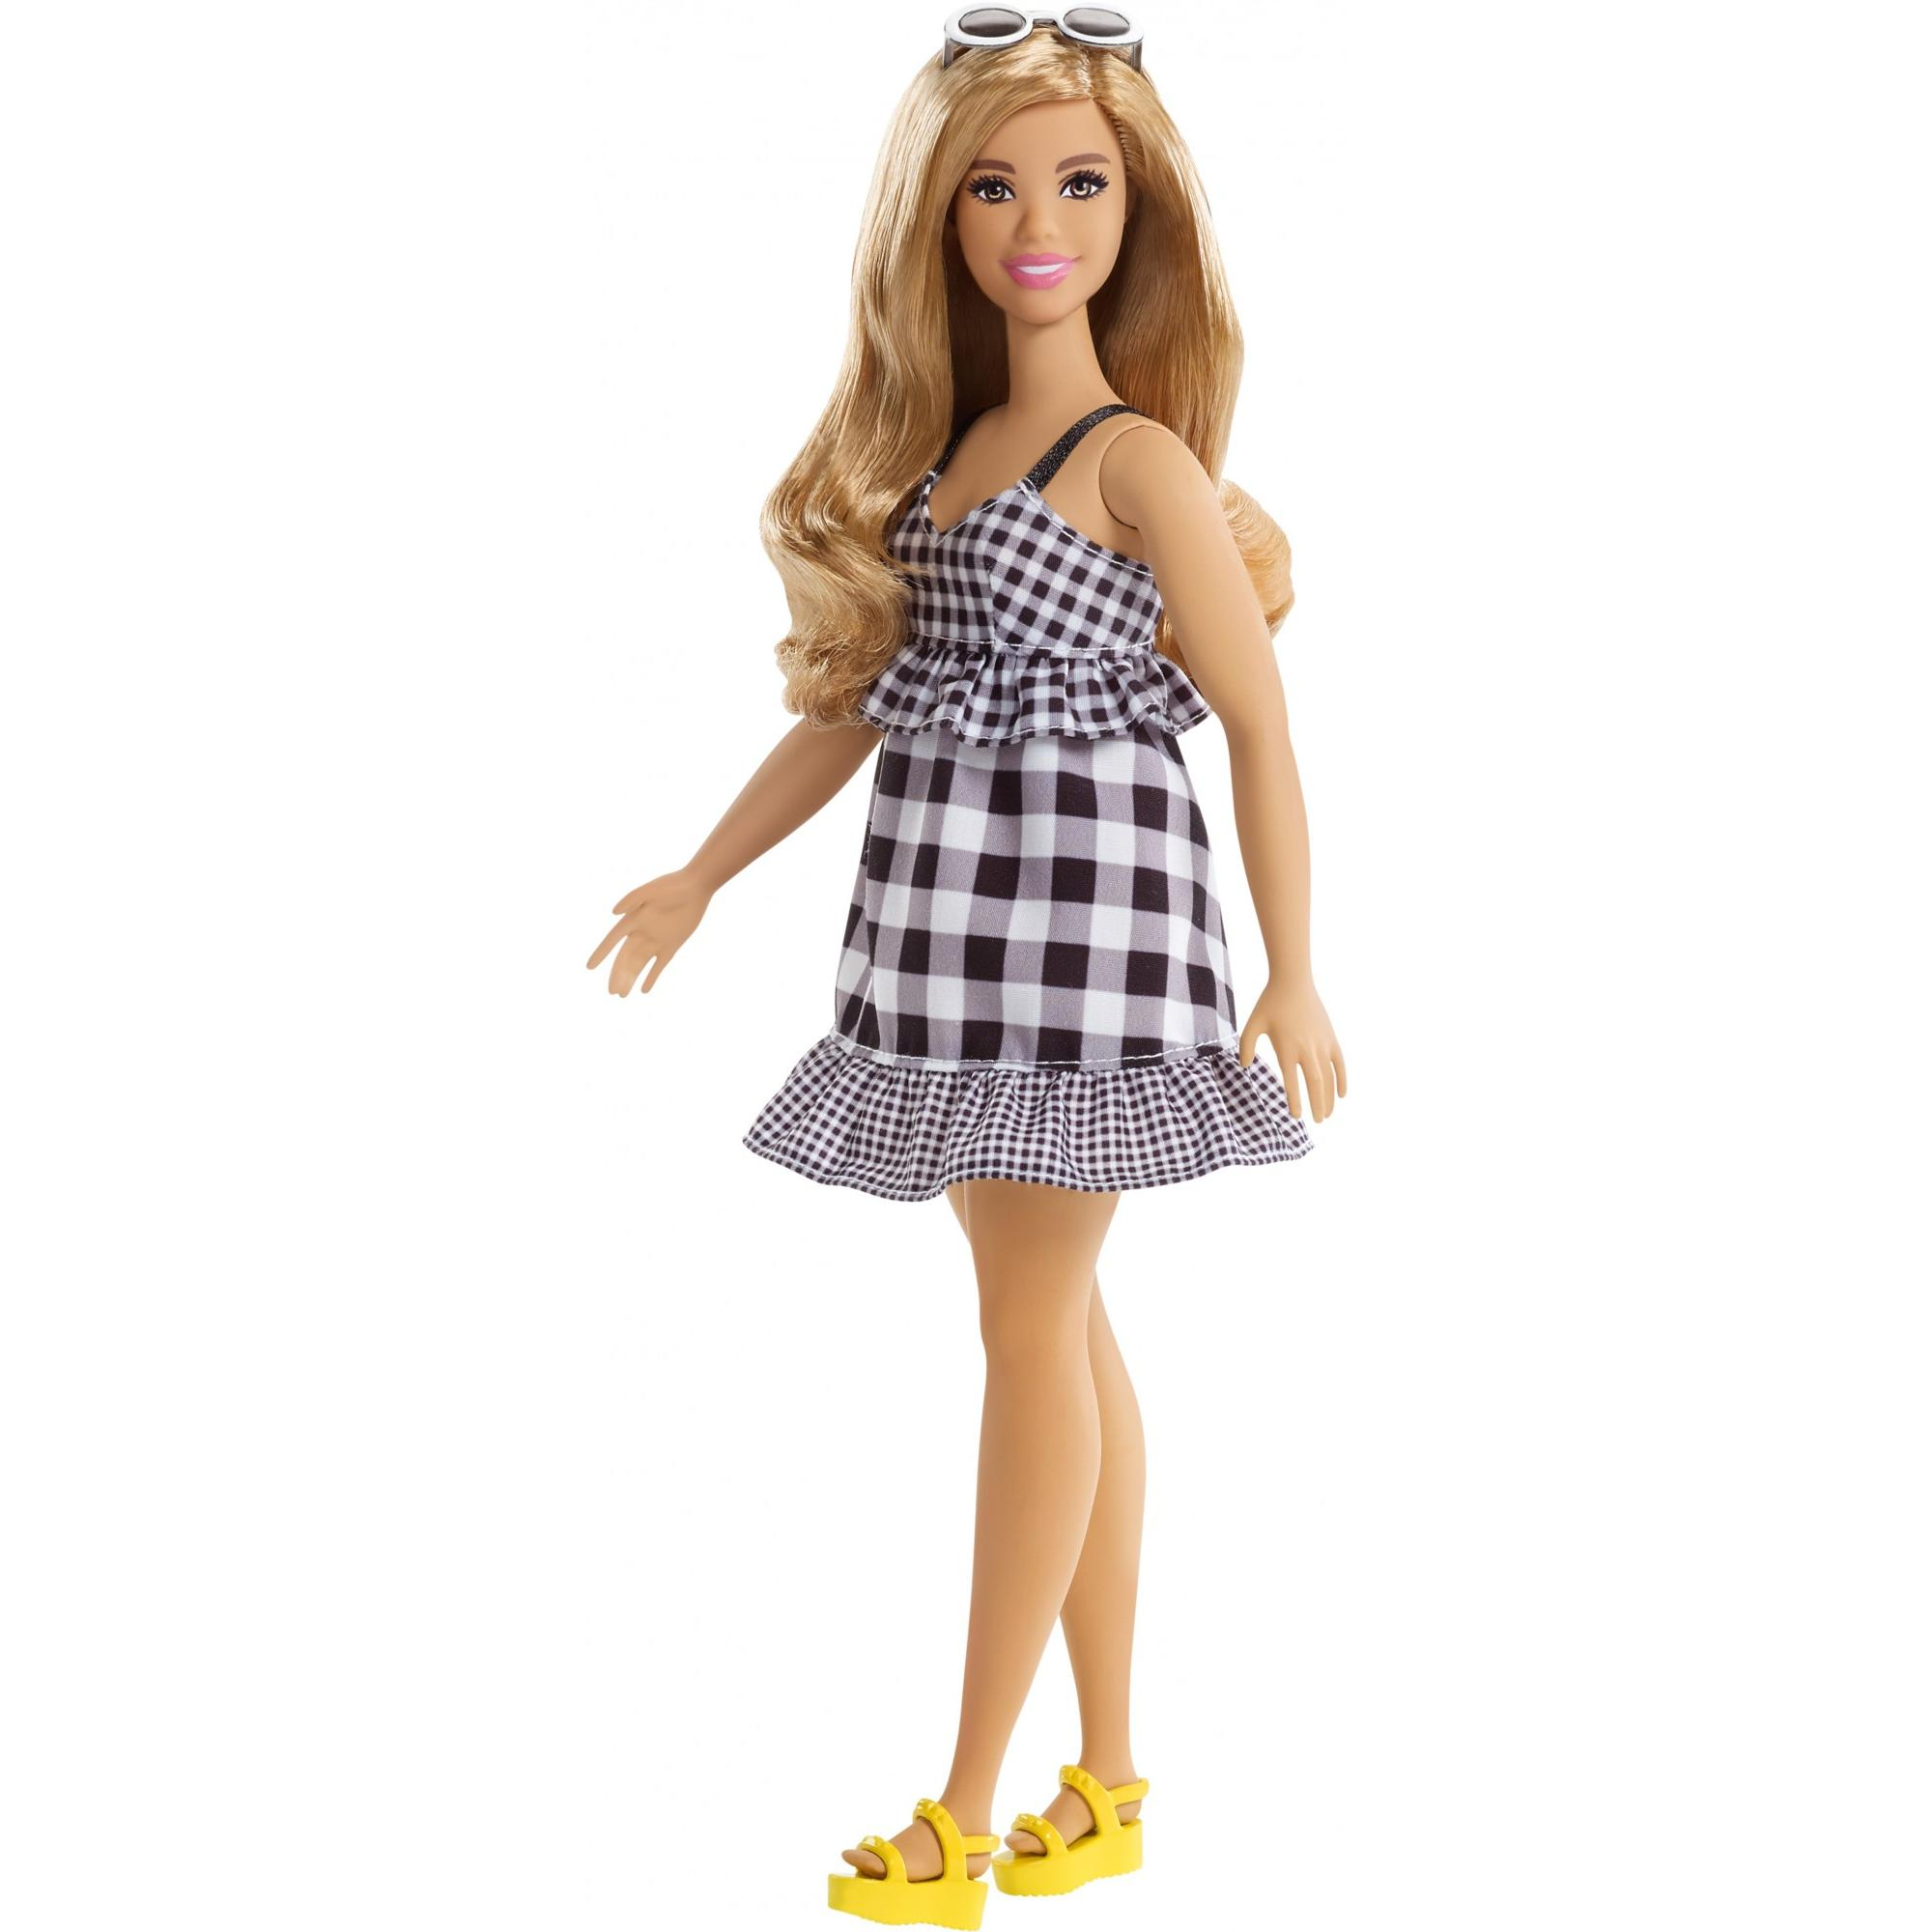 Barbie Fashionistas Doll, Curvy Body Type Wearing Black & White Dress